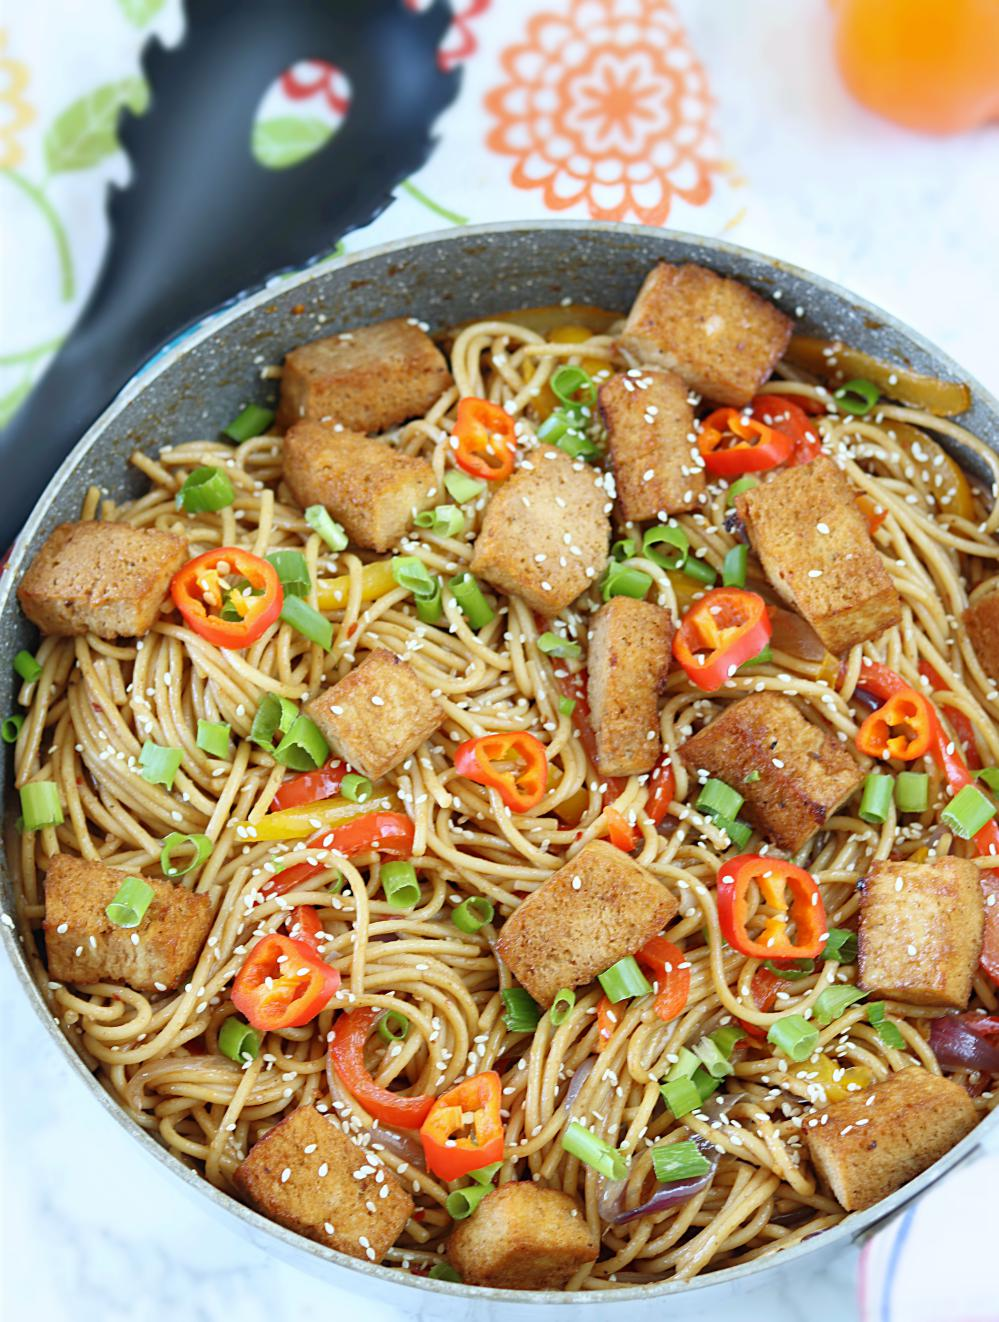 Chili Noodles With Grilled Tofu in peanut sauce